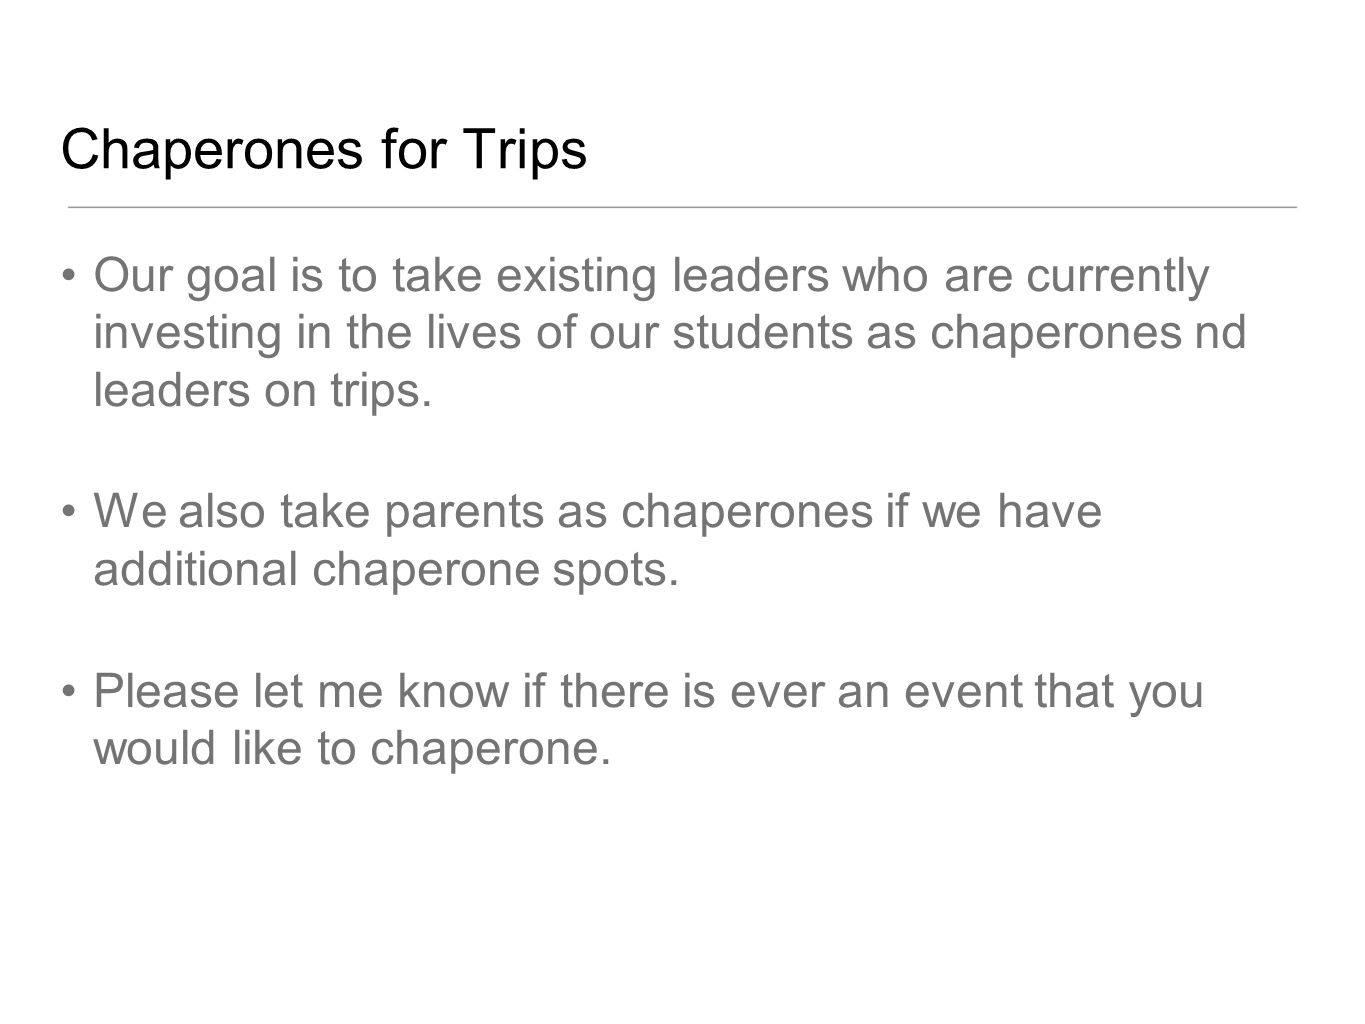 Chaperones for Trips Our goal is to take existing leaders who are currently investing in the lives of our students as chaperones nd leaders on trips.